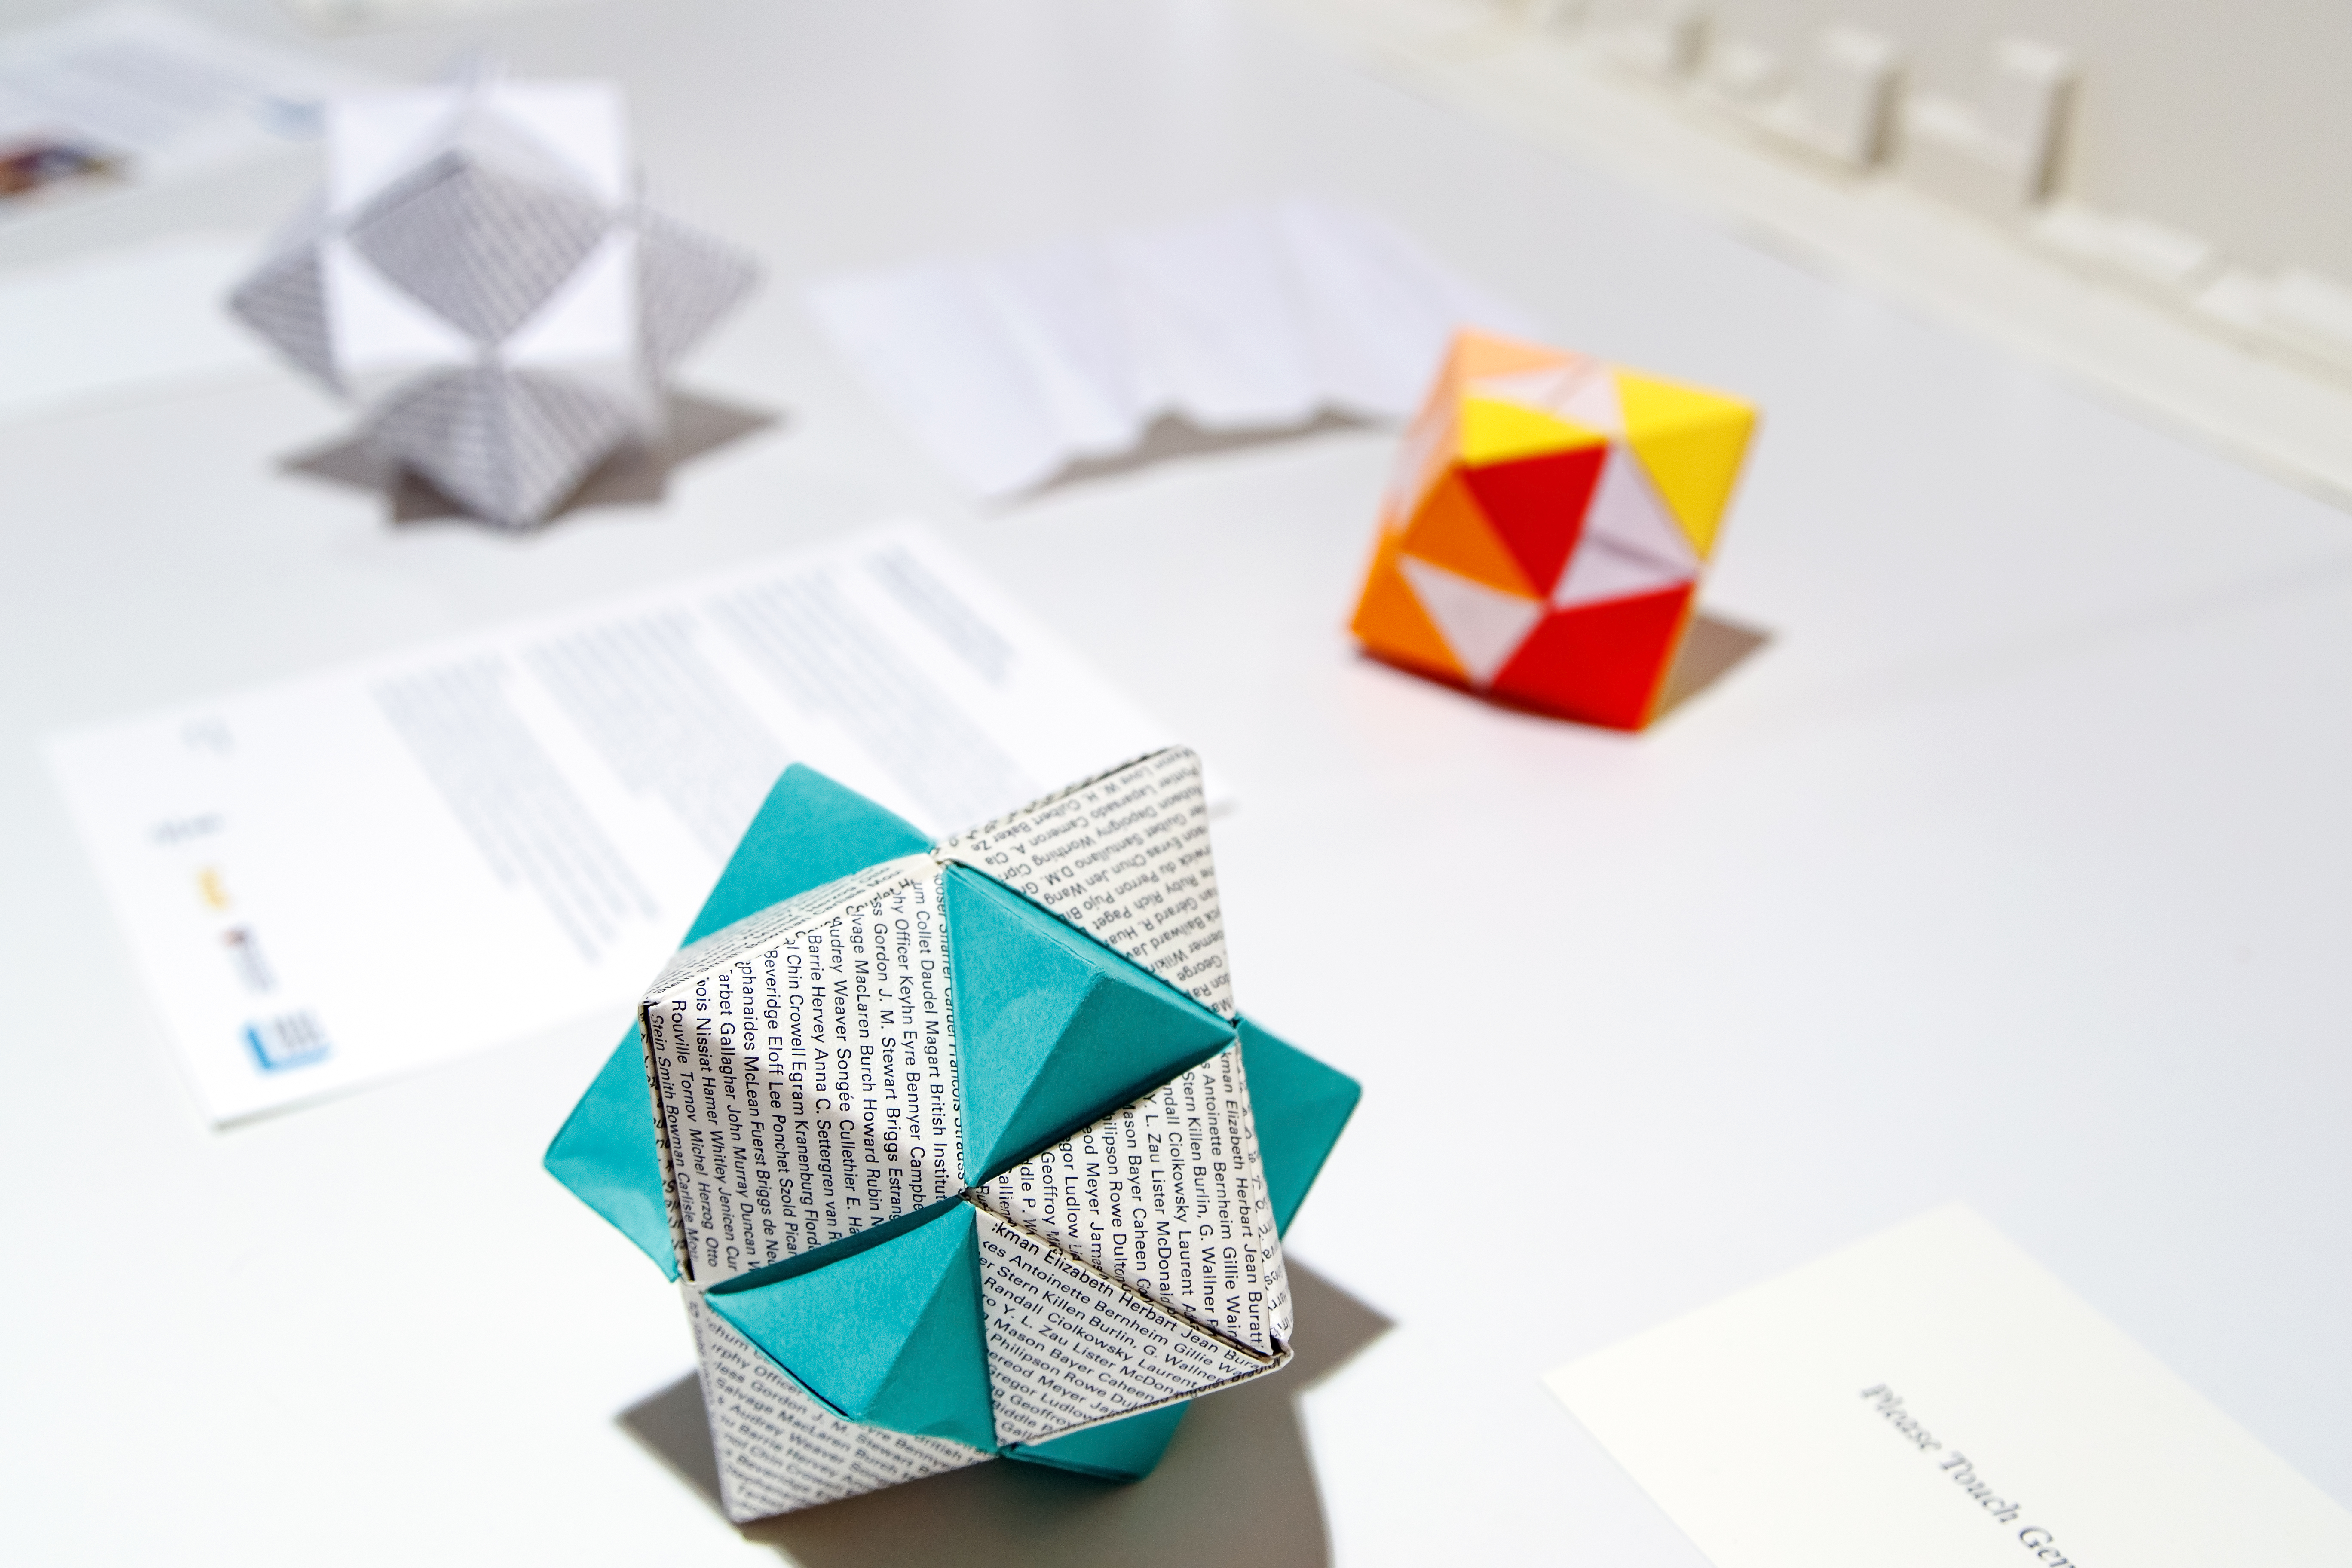 Folded origami model of a green cube intersecting a white octahedron covered with printed text.